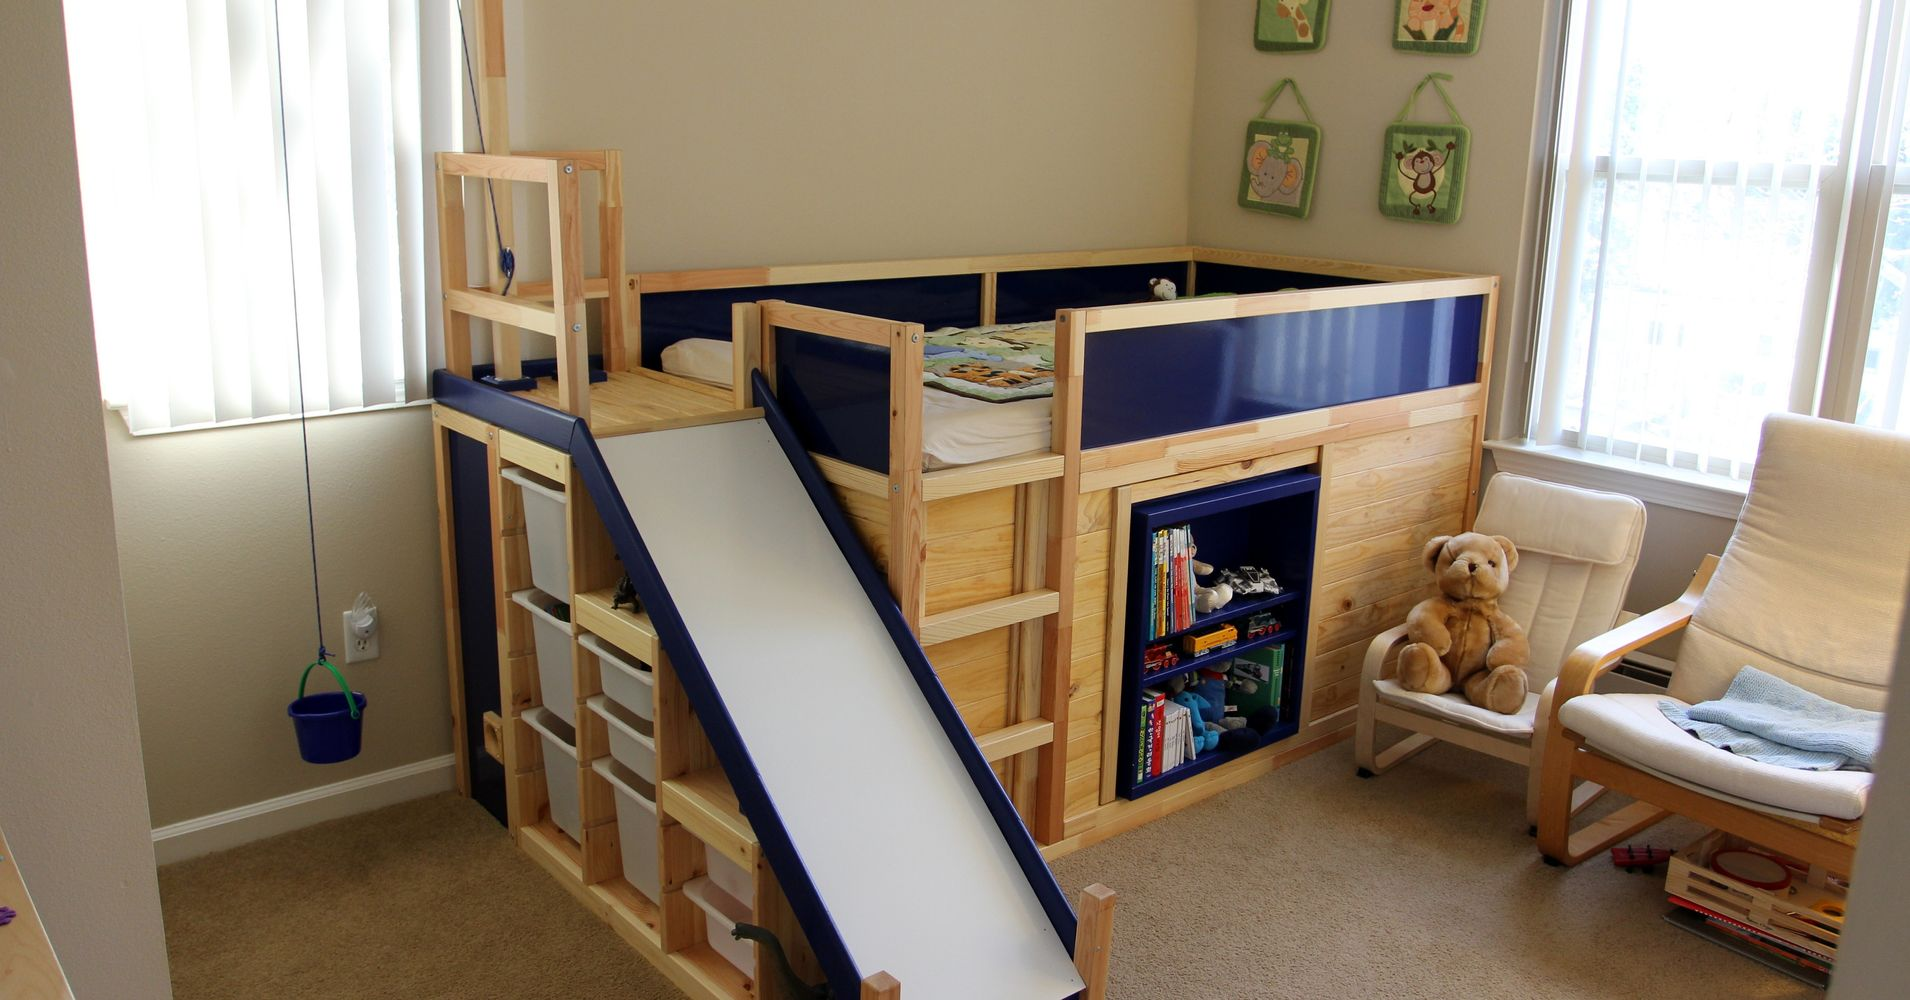 One Dad Hacked Ikea To Make The Ultimate Kids' Bed On The